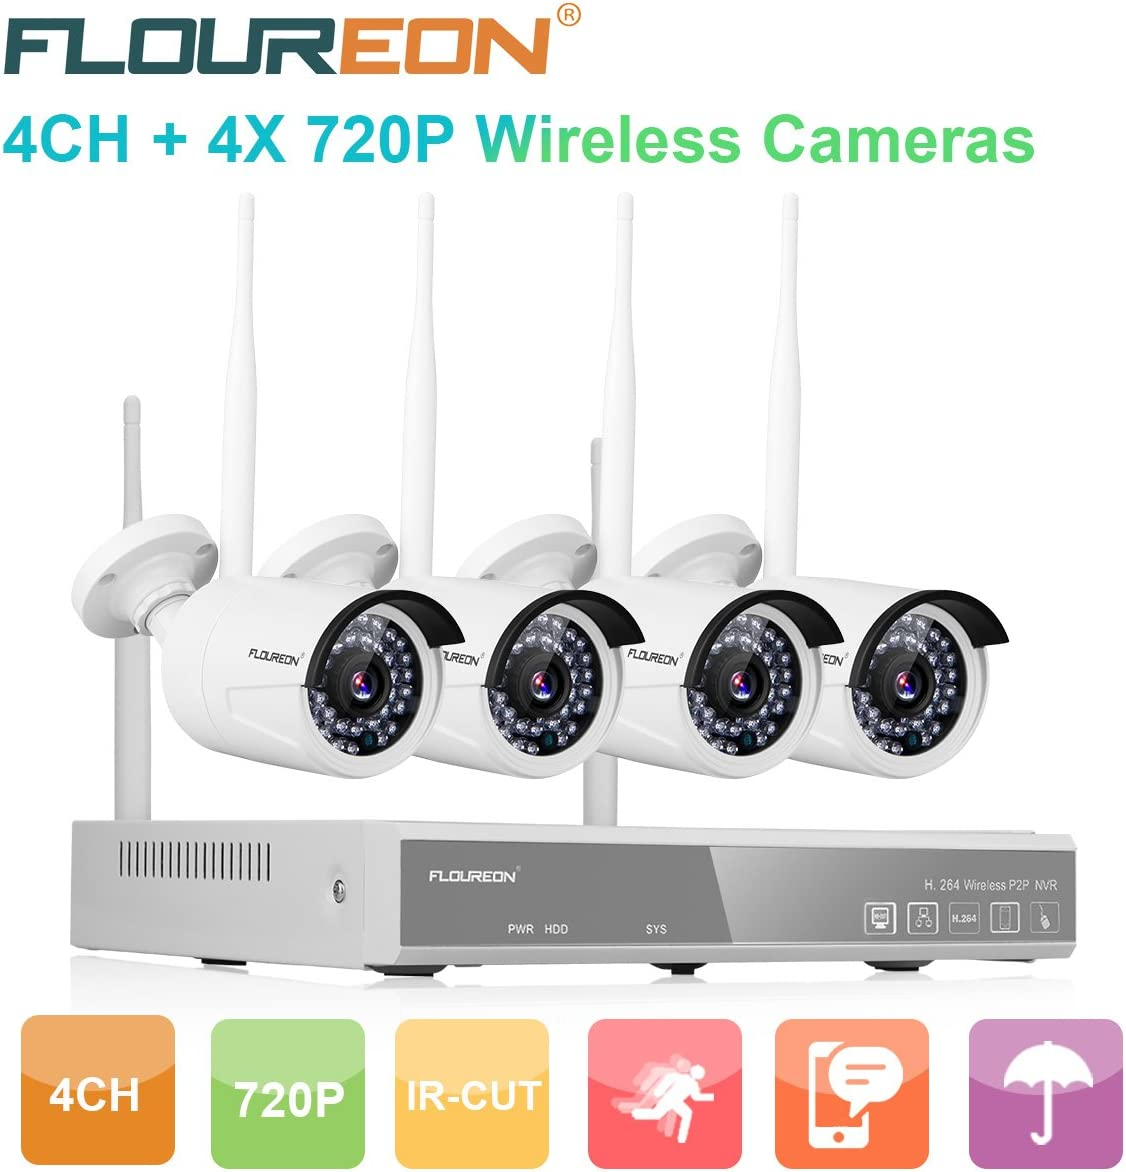 FLOUREON Wireless CCTV Security House Camera System 4CH NVR Kits 1080P 4 Pack 720P 1.0MP HD Wireless IP Network WiFi Camera Night Vision Remote Access Motion Detection 4CH 4X 720P Camera